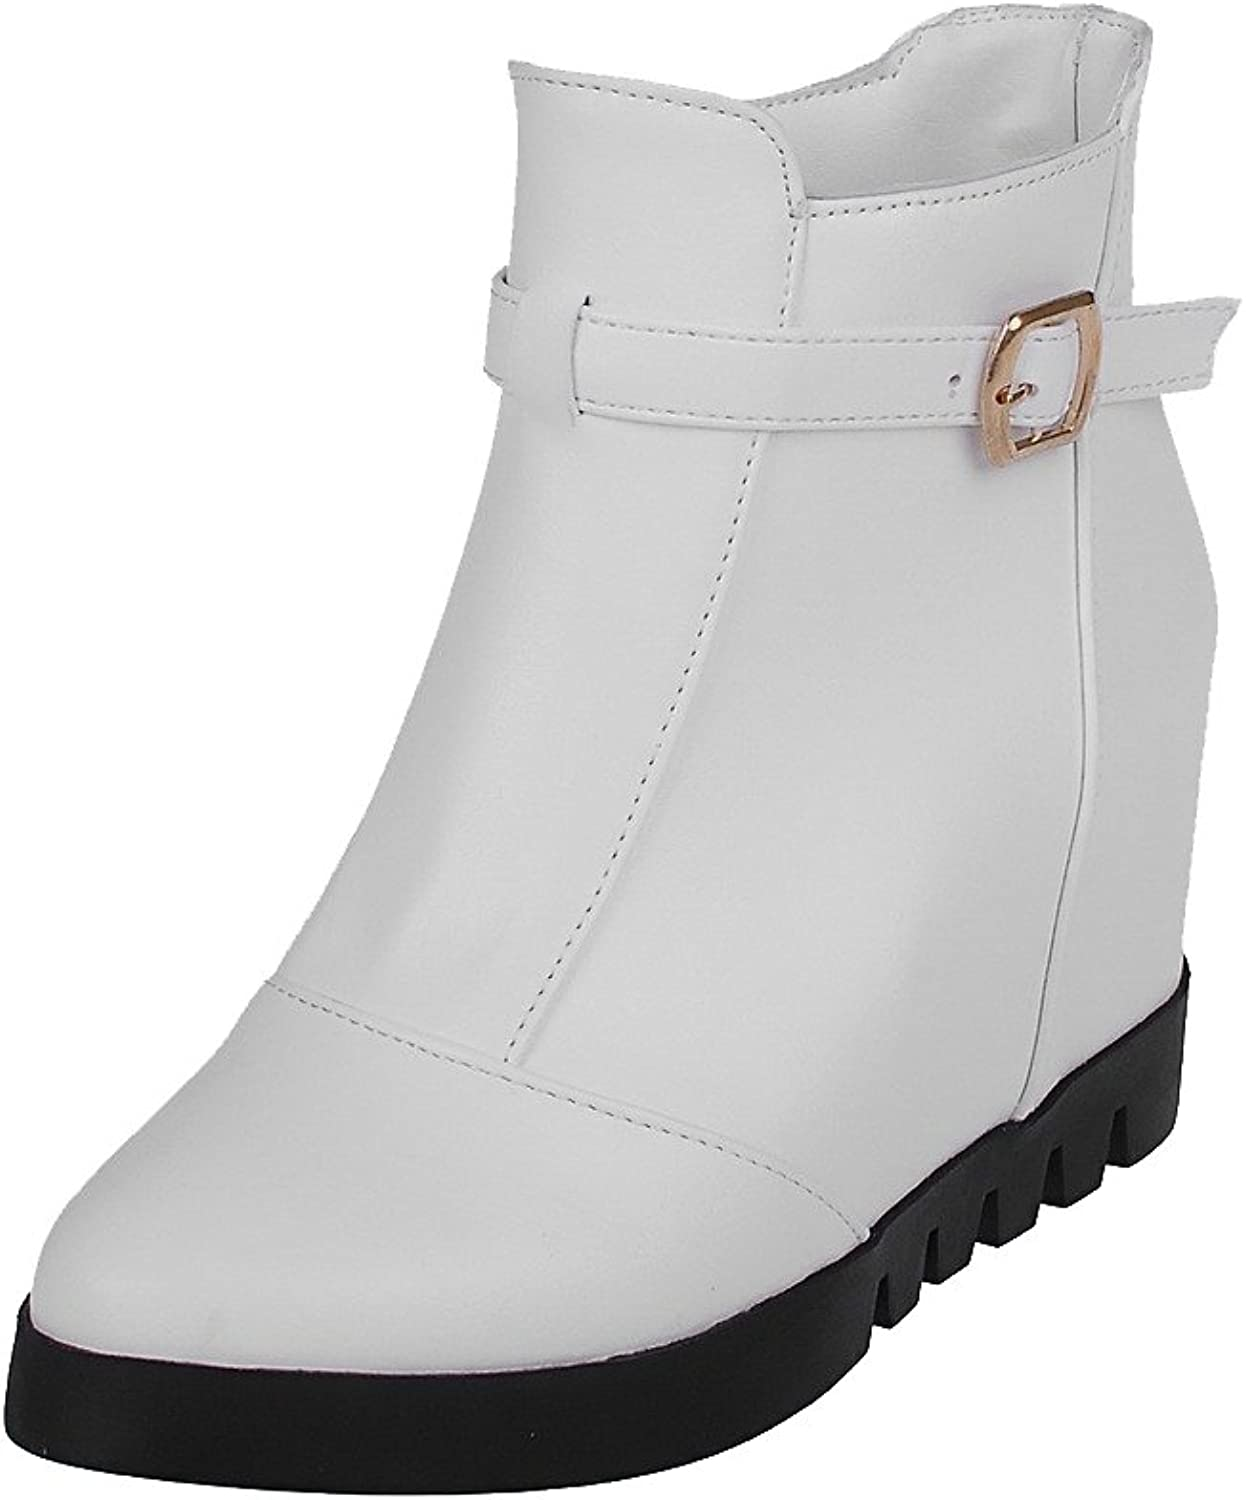 AmoonyFashion Women's Low-top Pull-on Soft Material High-Heels Round Closed Toe Boots